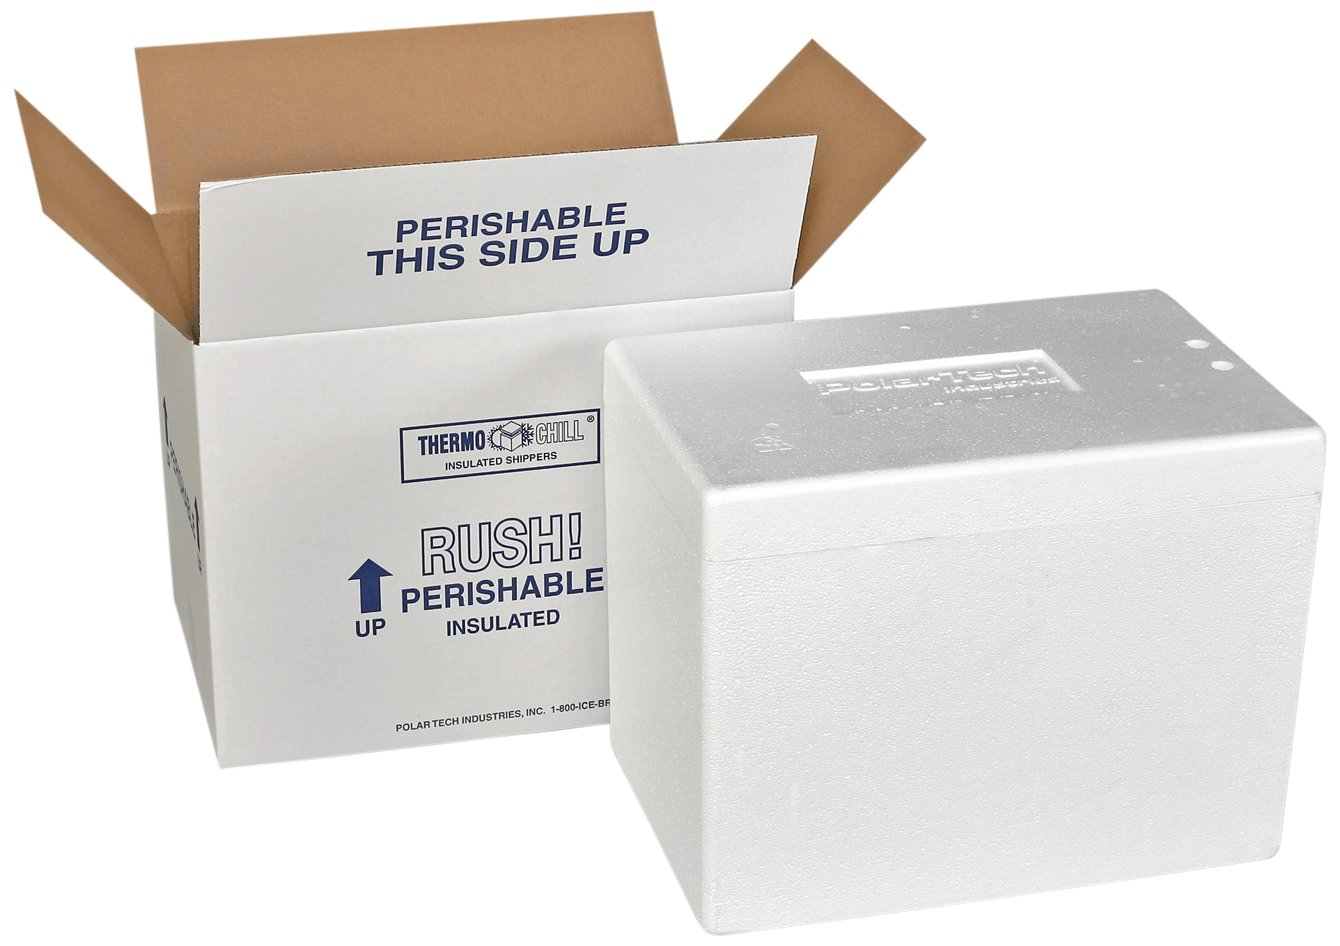 Polar Tech Thermo Chill 269/T69C Large Insulated Foam Container, 21-1/4'' Length x 15-1/2'' Width x 15-1/2'' Depth